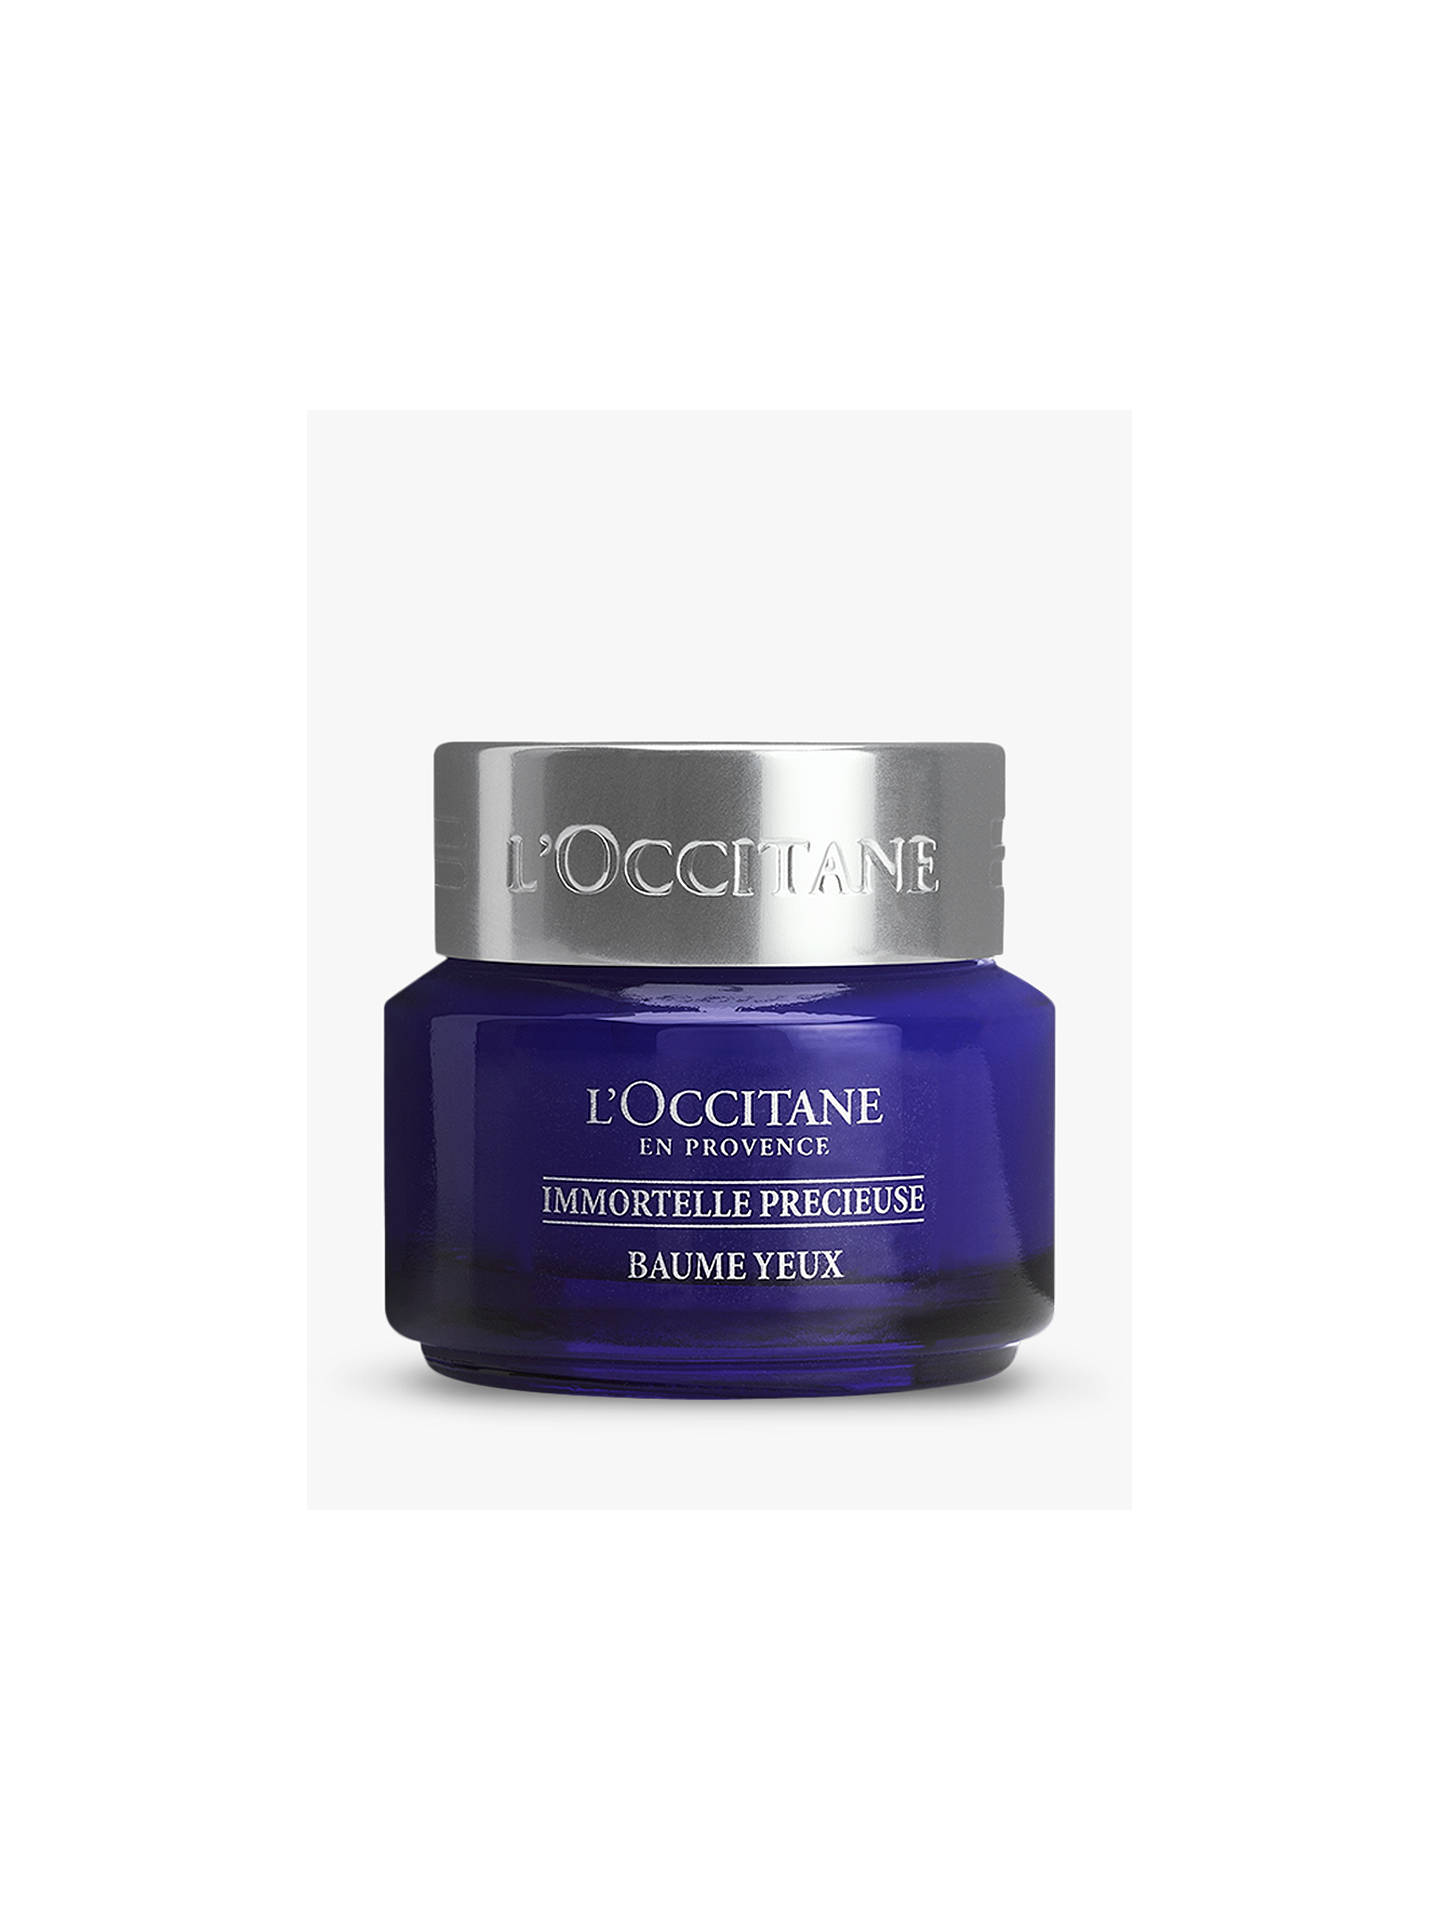 Buy L'Occitane Precious Eye Balm, 15ml Online at johnlewis.com